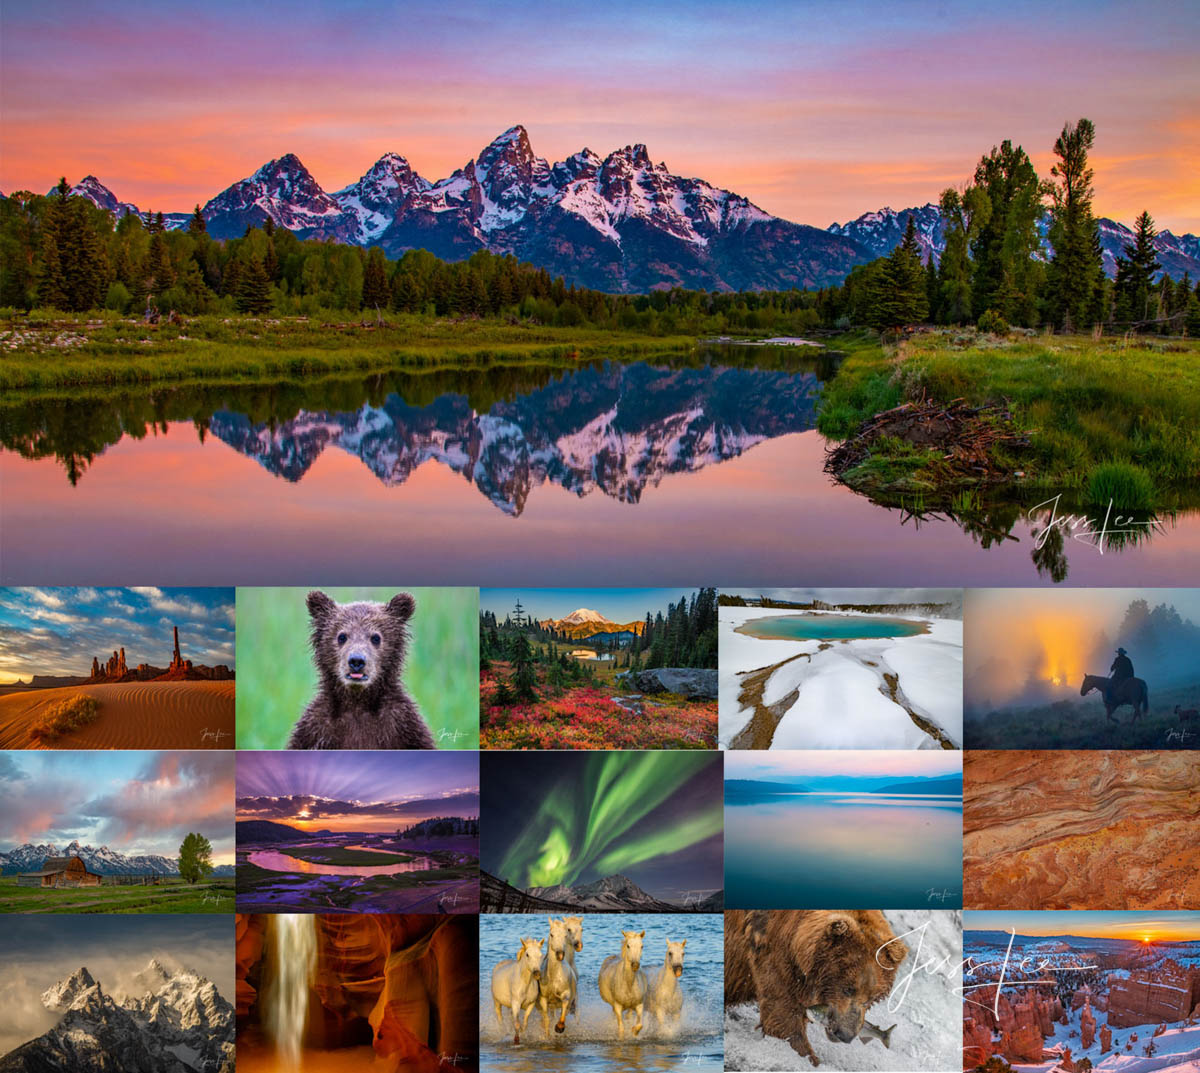 Fine Art Landscape, Nature, Wildlife, Cowboy Photography For Sale. Very High Quality Exclusive Limited Edition Luxury Fine Art...